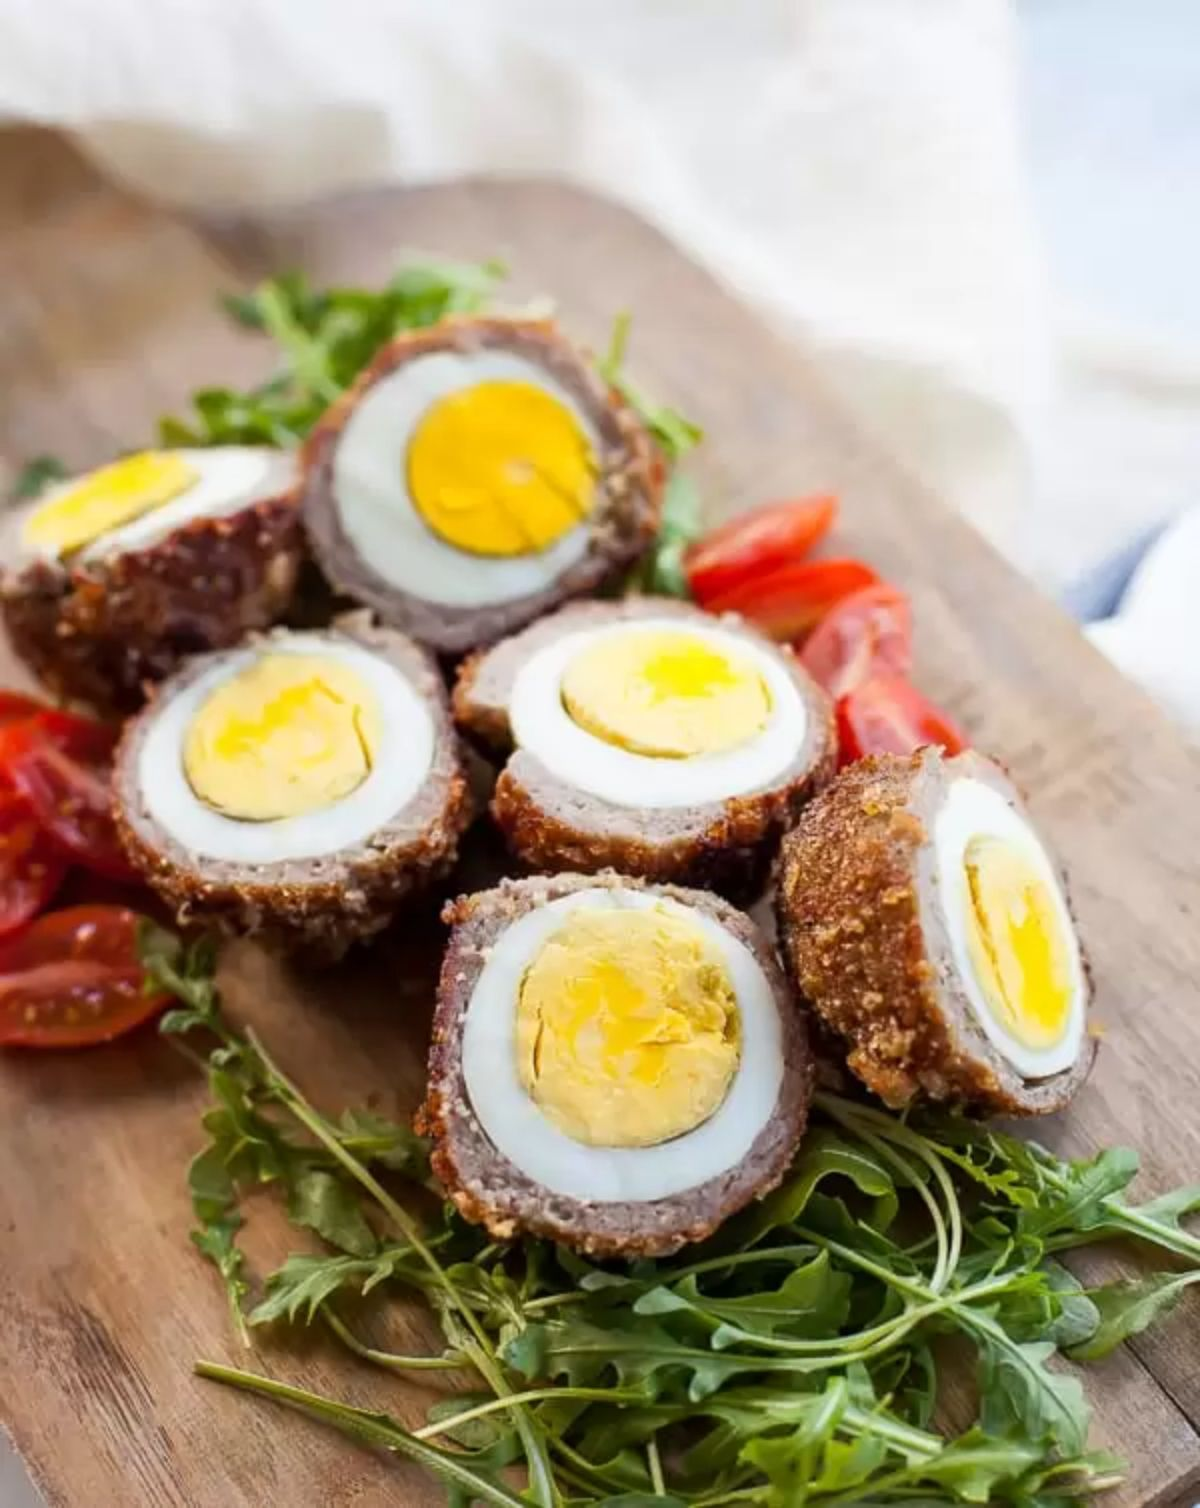 A wooden chopping board has 3 halved scotch eggs on a bed of arugala leaves and tomatoes